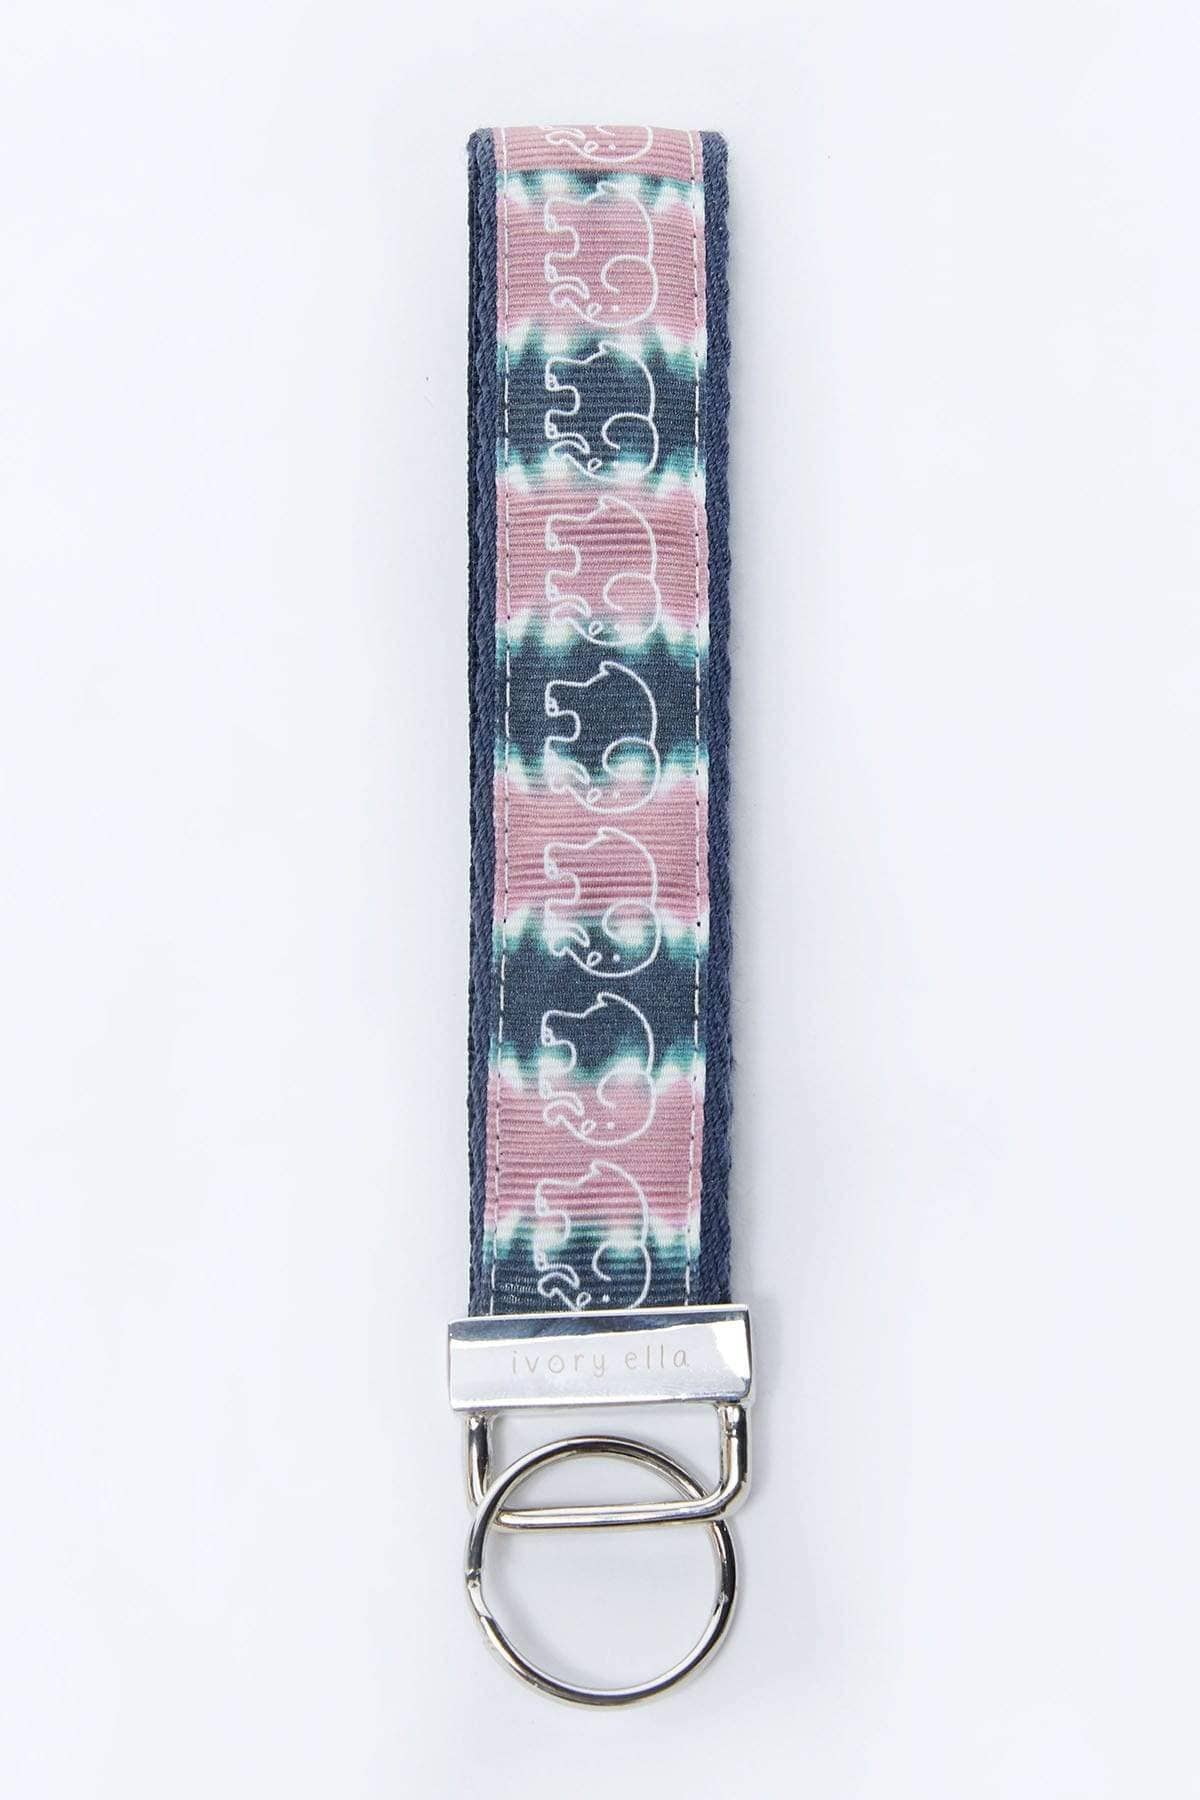 Ivory Ella Accessories OS Tie Dye Key Fob